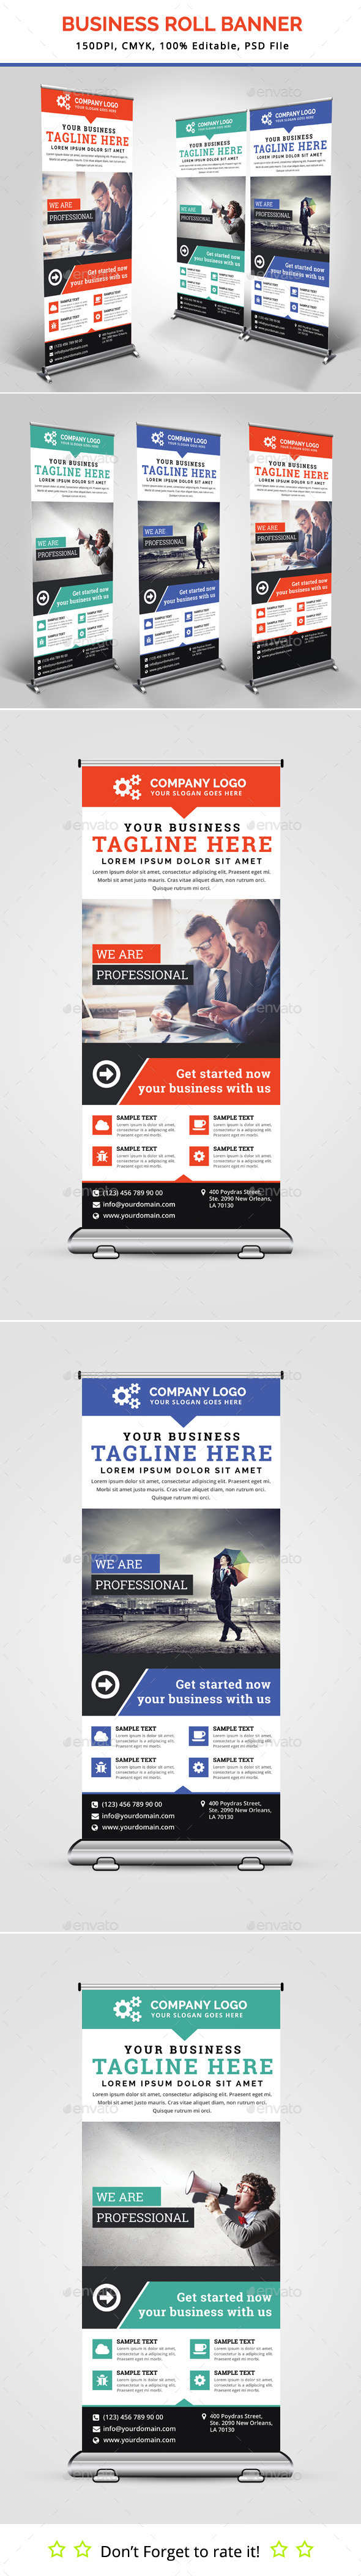 Business Roll Up Banner V18 - Signage Print Templates